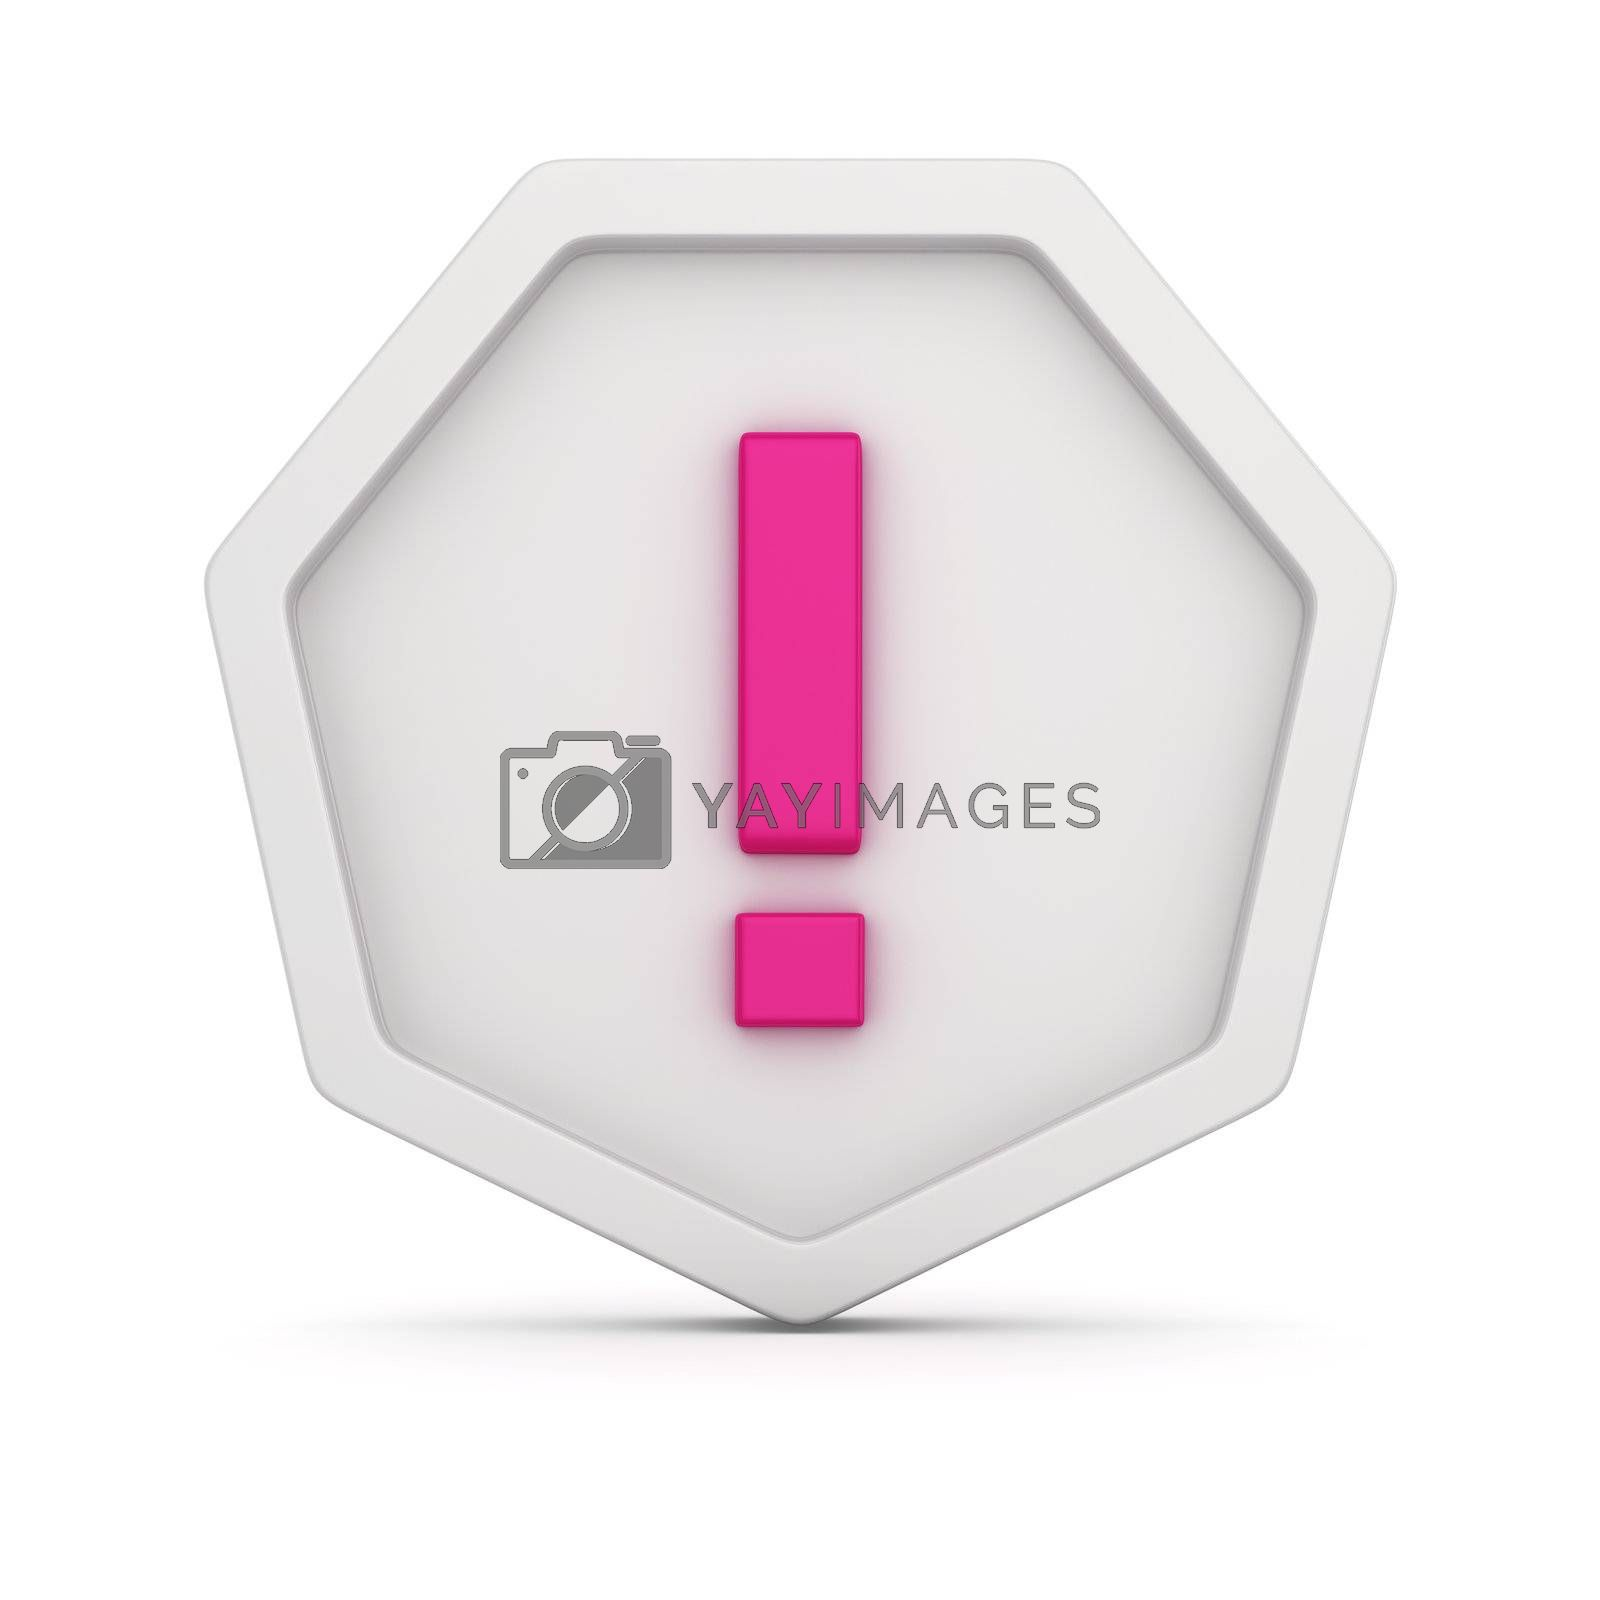 Warning badge with exclamation mark on it